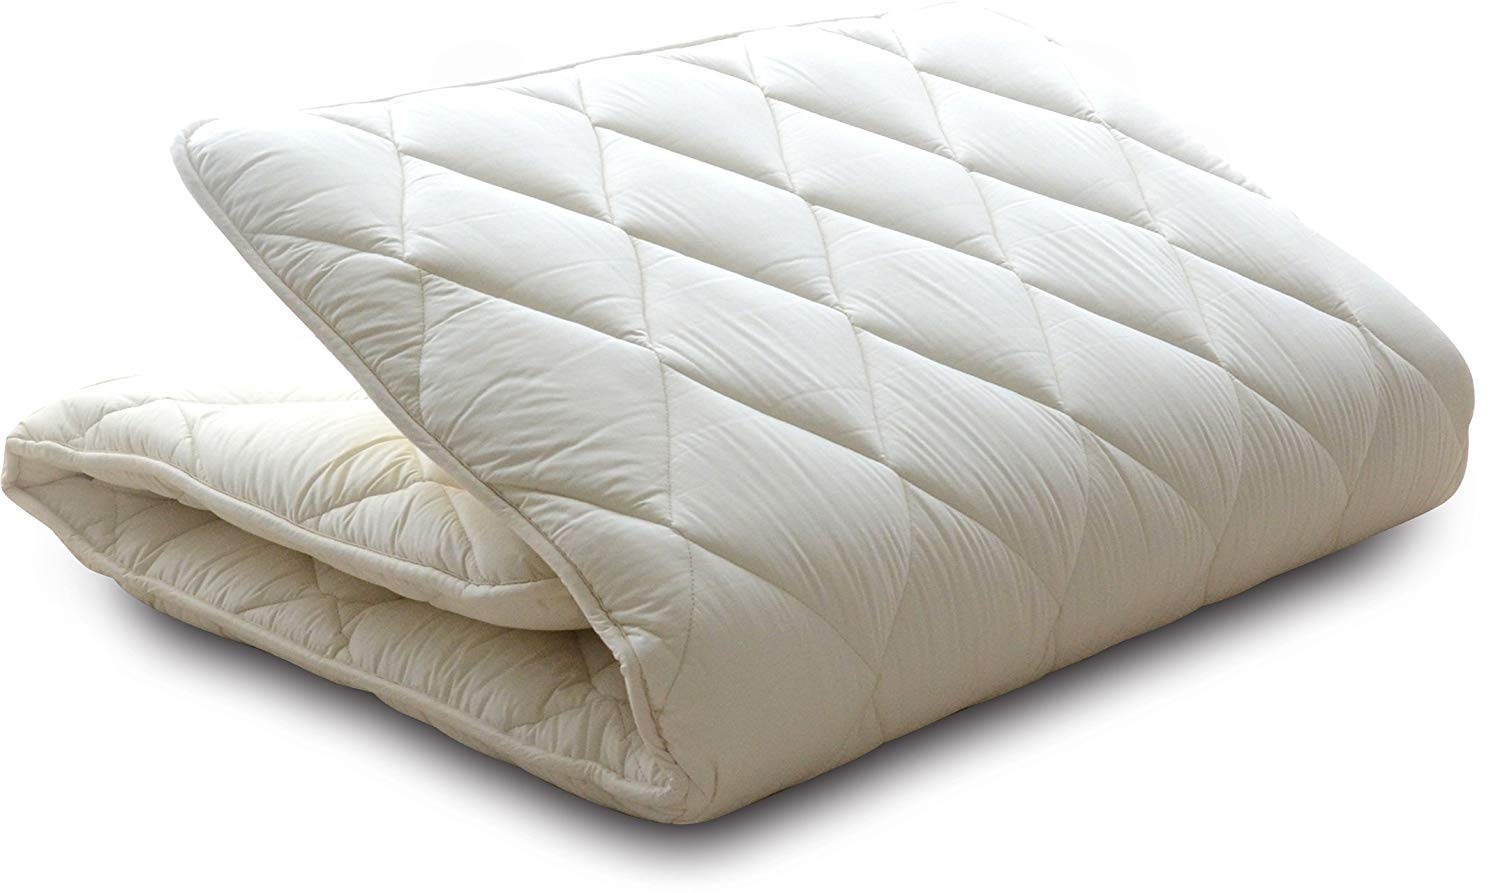 EMOOR Best Futon Mattress Review by www.snoremagazine.com